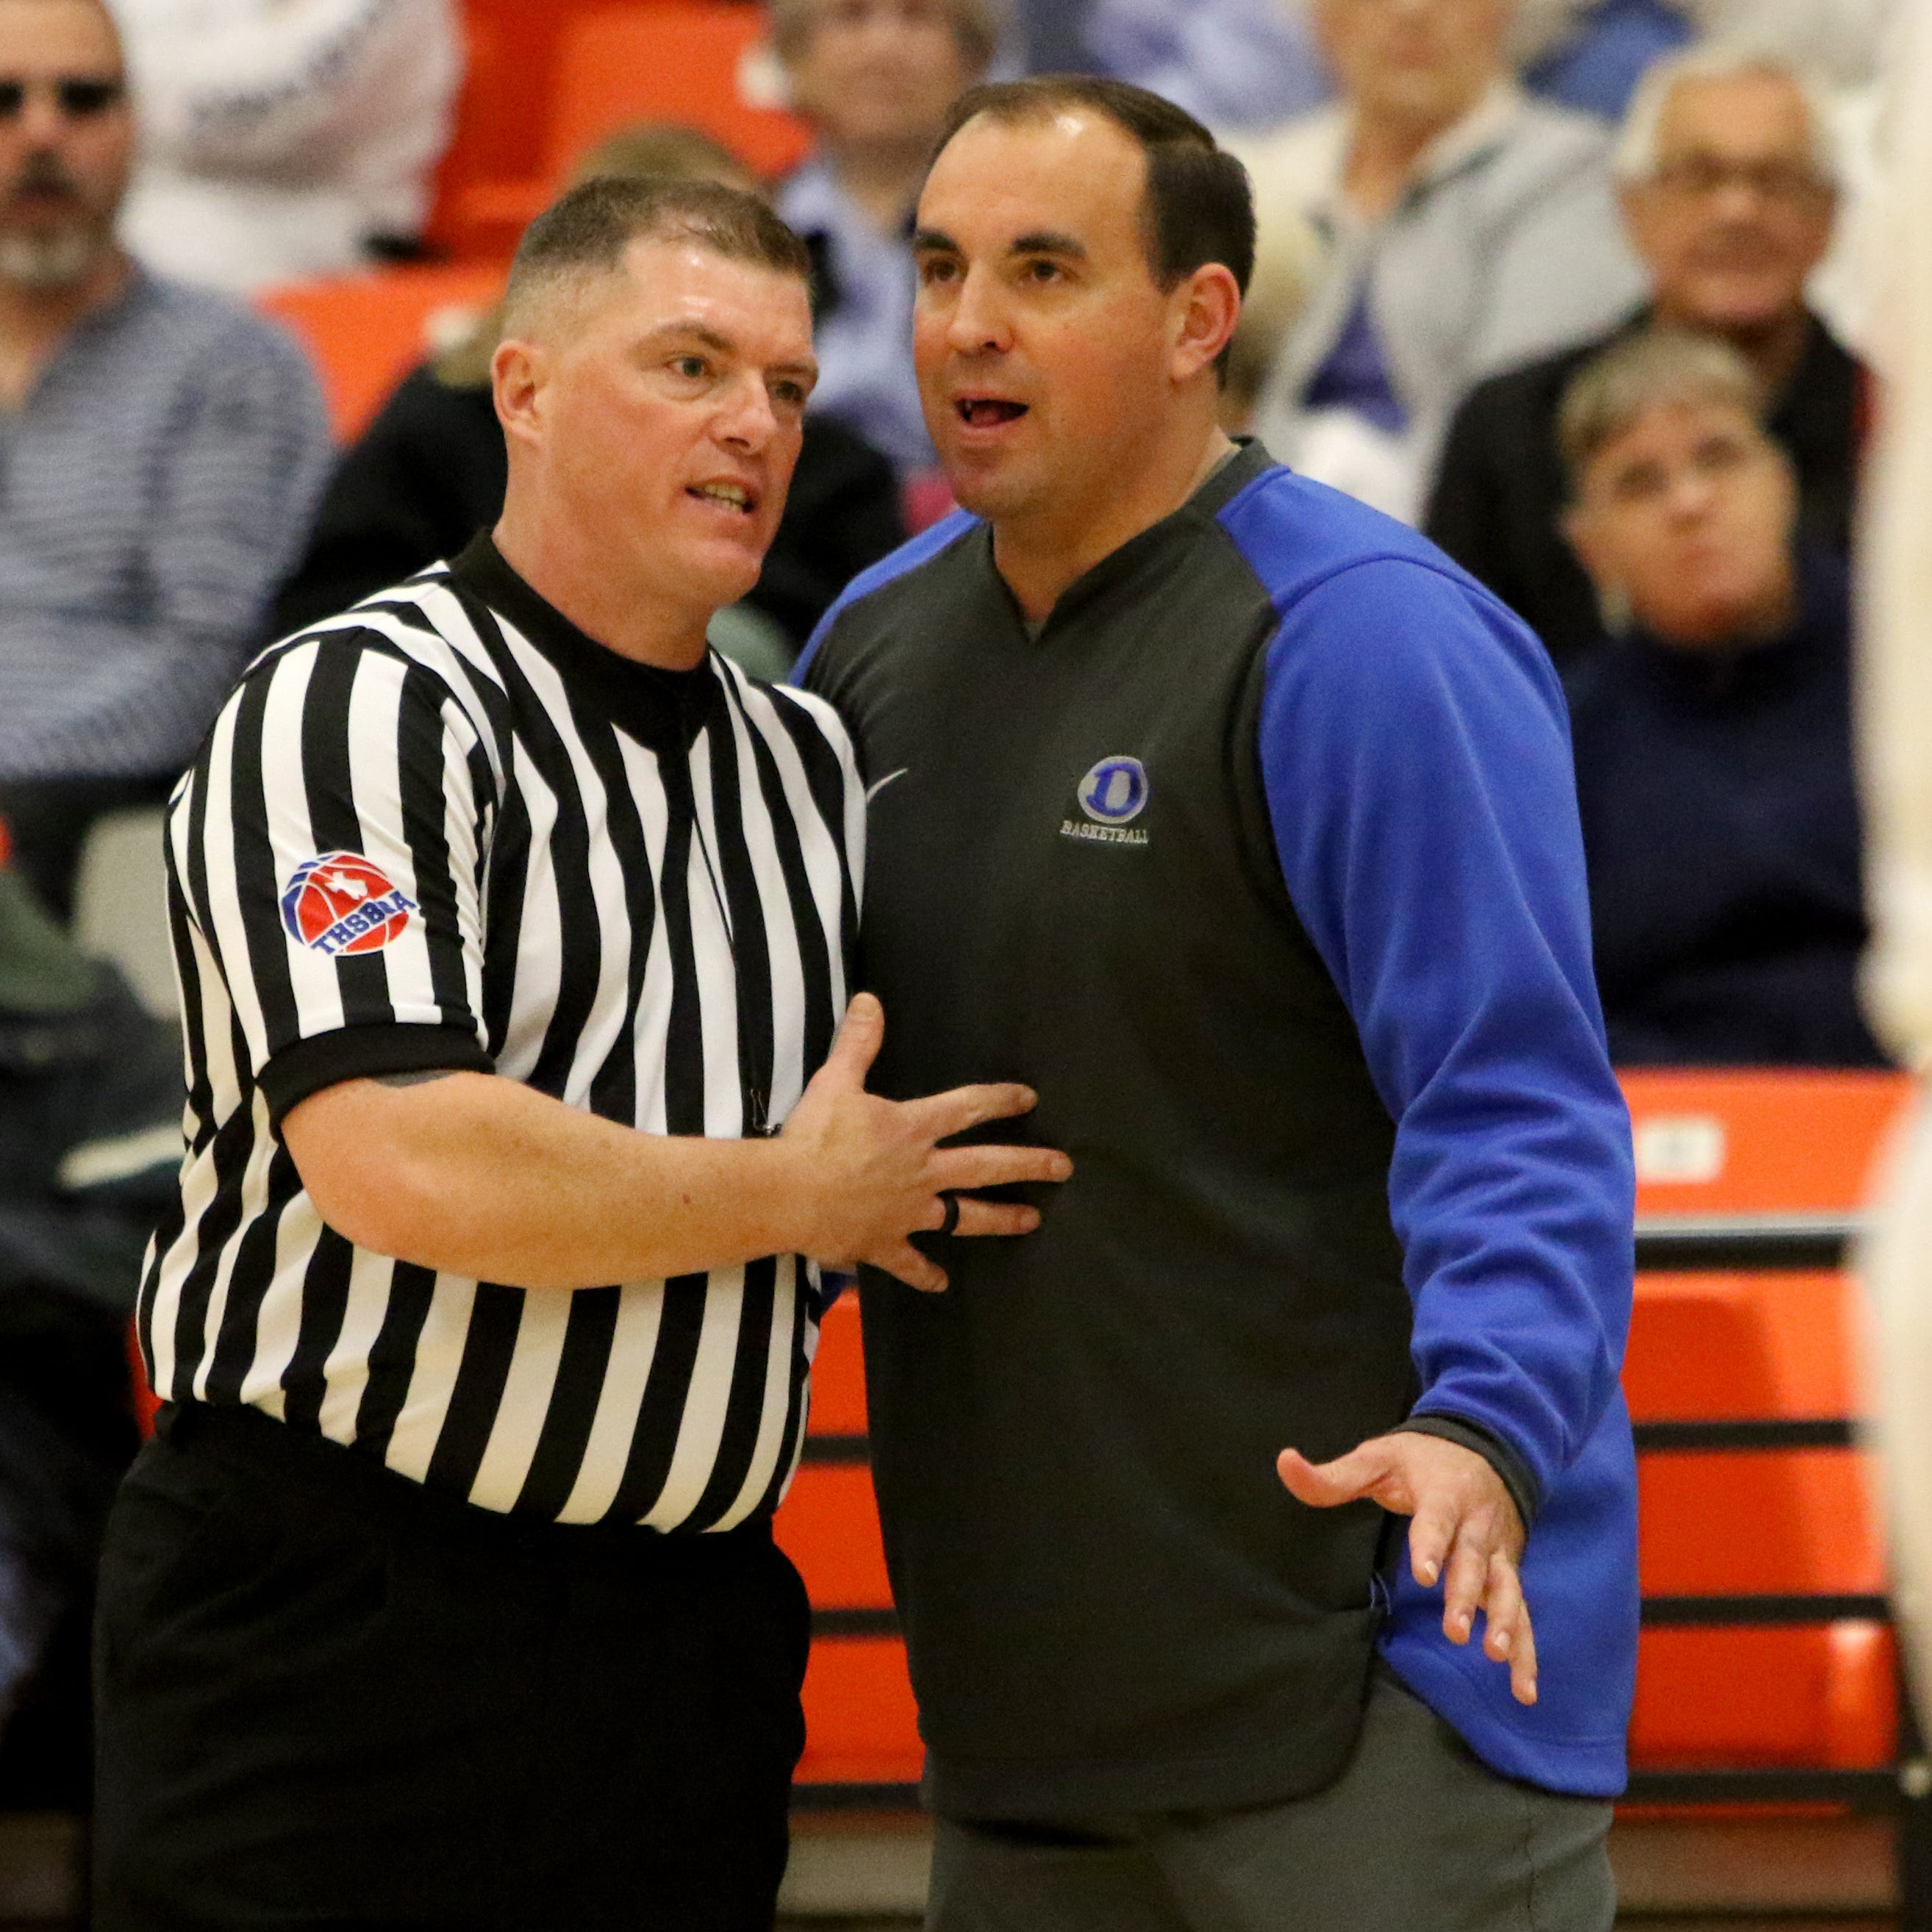 Coffman's coaching roots have helped him lead Decatur to UIL state basketball tournament